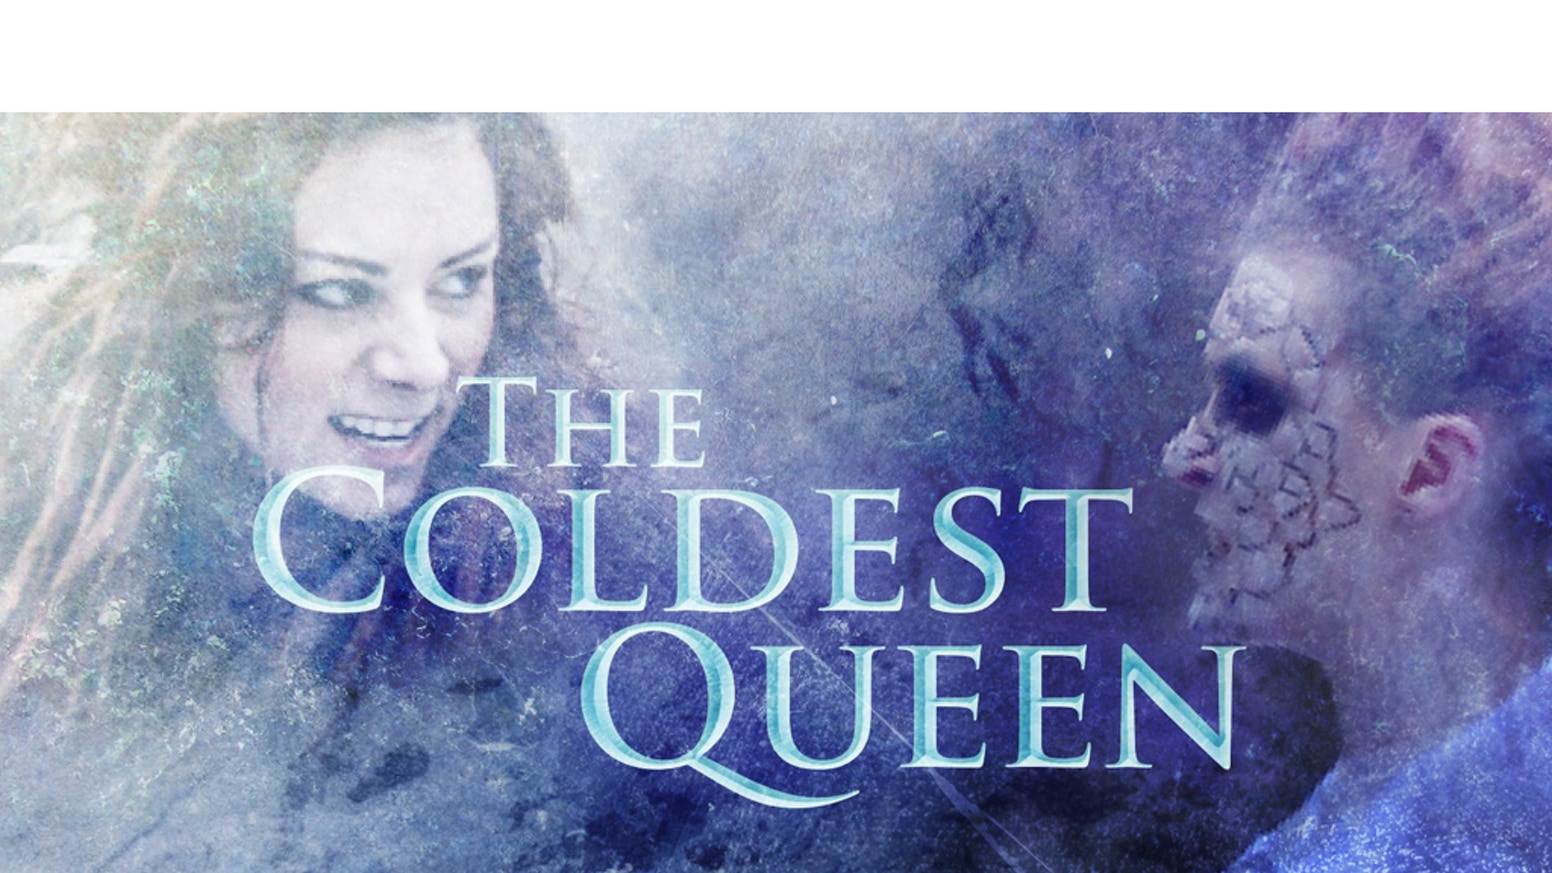 We did it! Thanks to all of you, you are  best! A whopping total of £3300 helped us shoot our movie The Coldest Queen and its now in the cutting room! See you at the Premier :-) (keep watching our facebook page for premier details)loveISSIMO